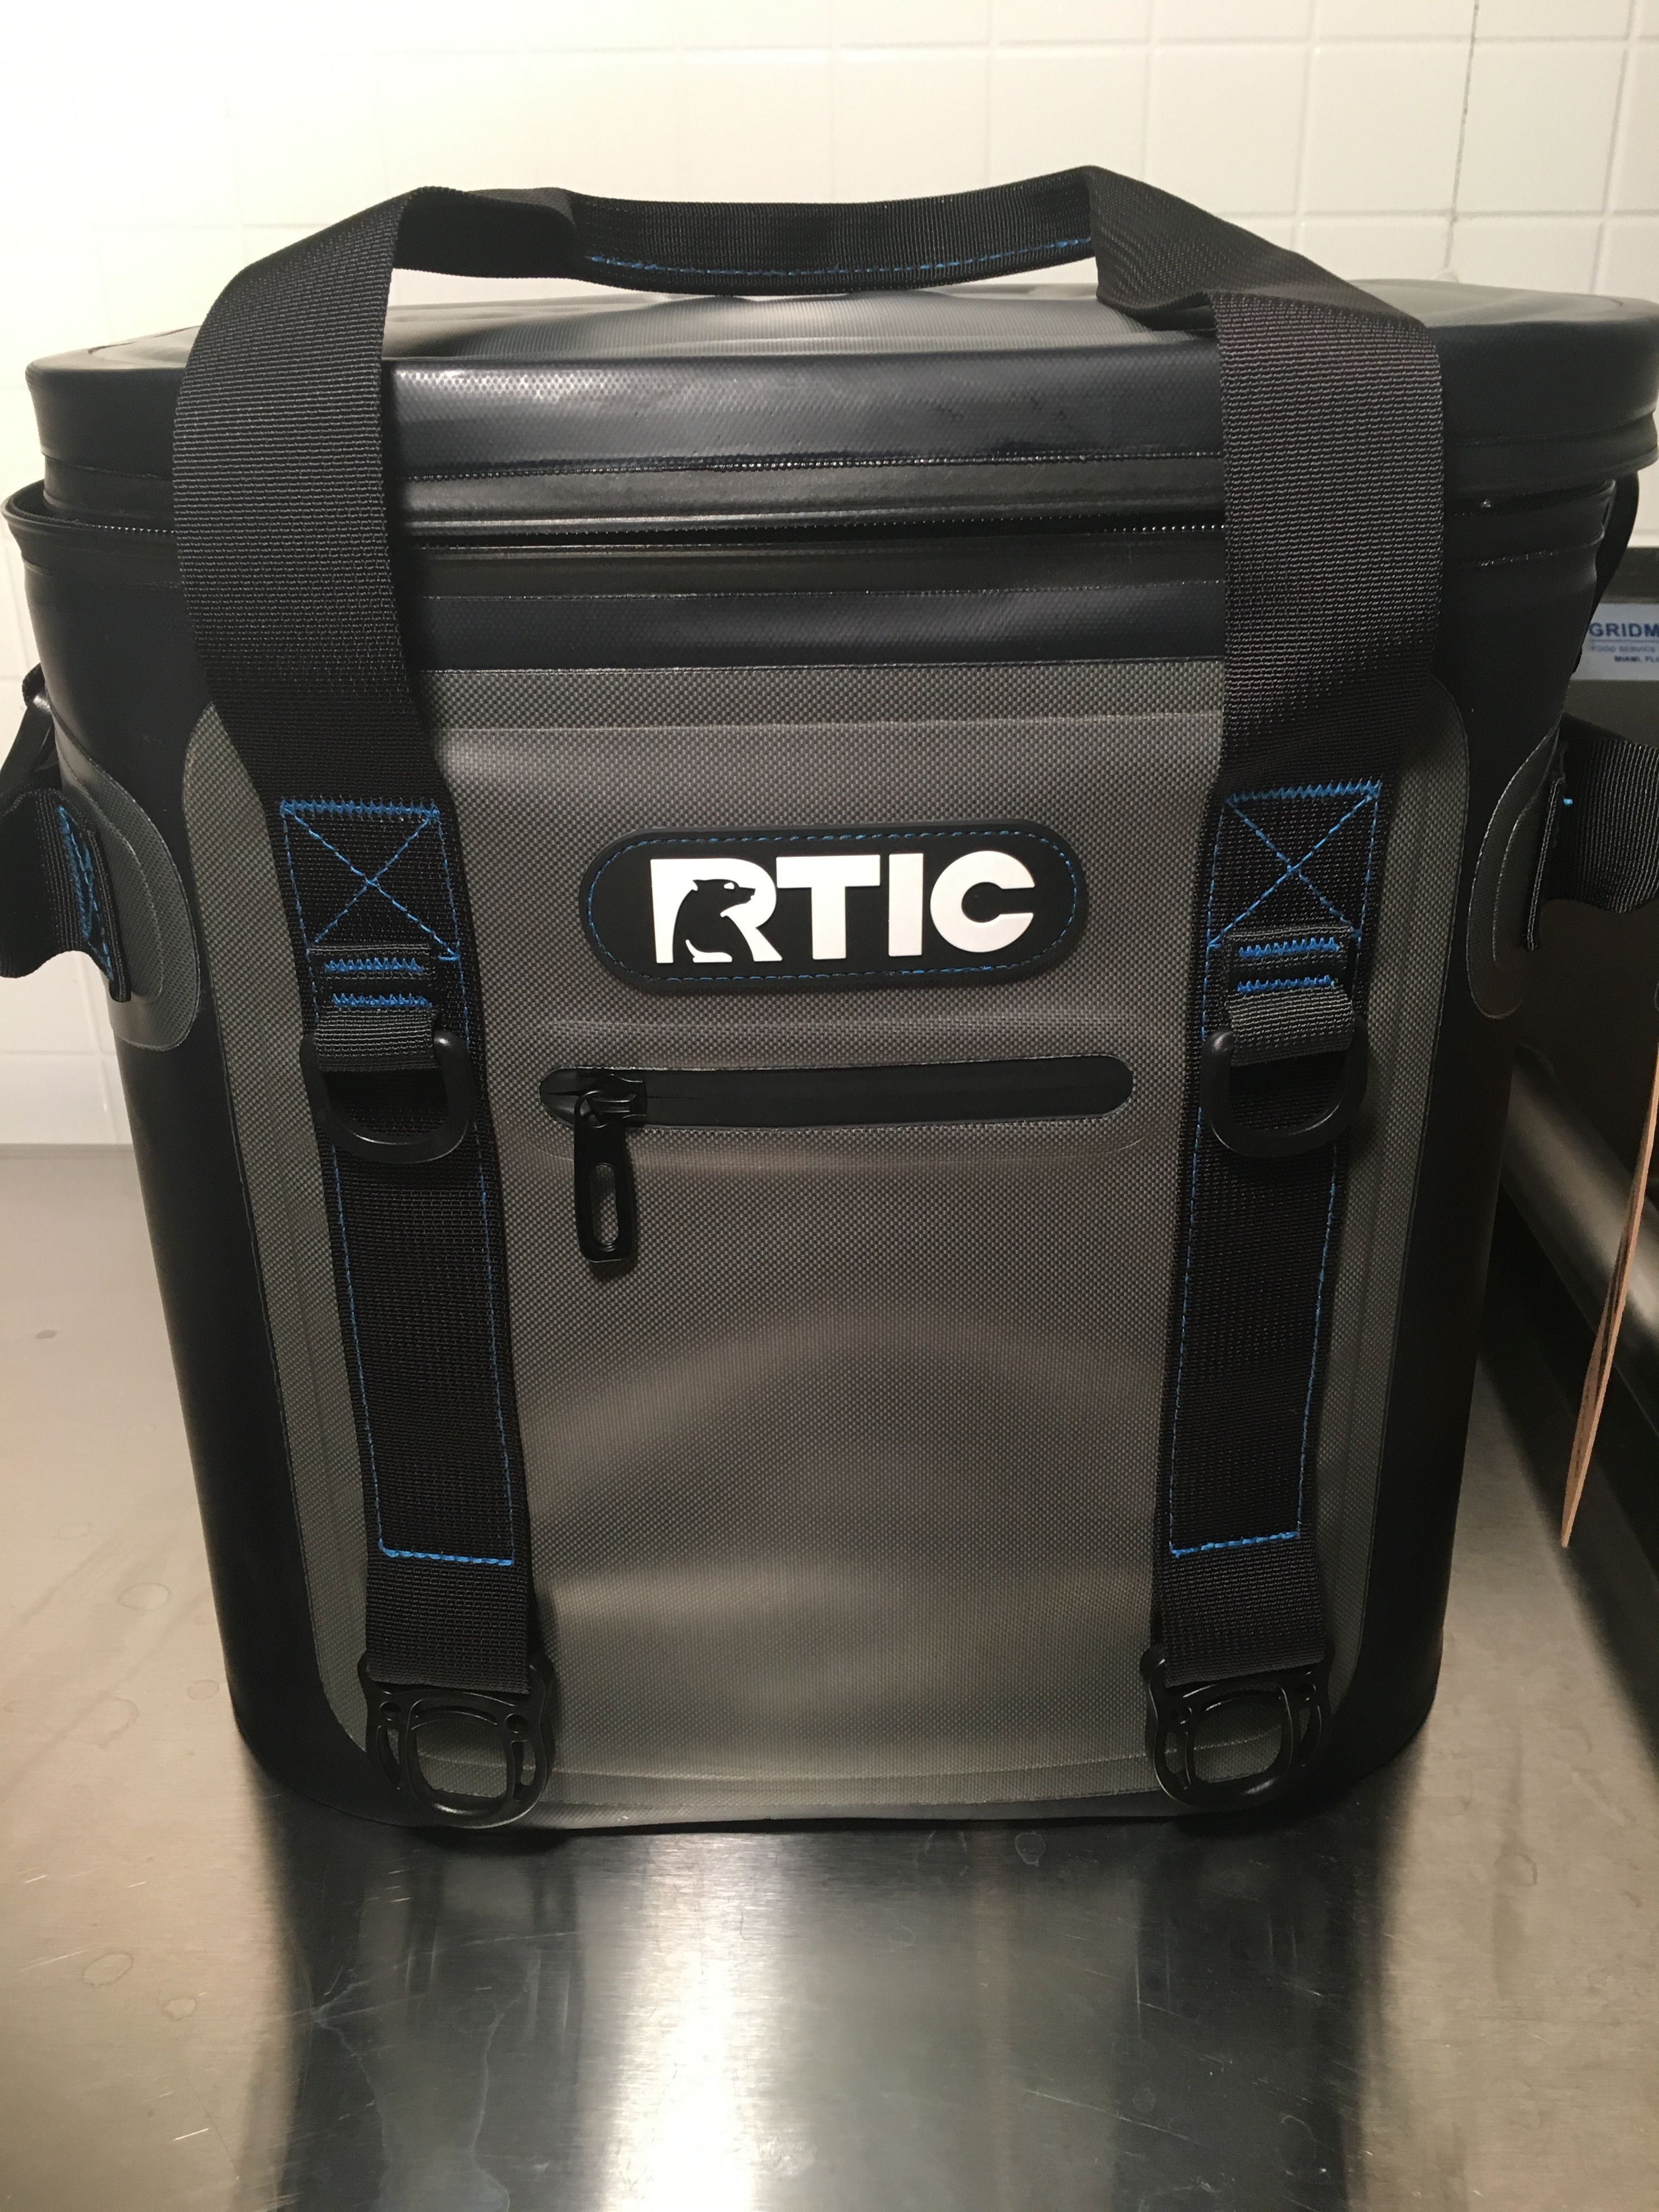 Hands On Review Rtic Soft Pack Coolers Homebrew Finds